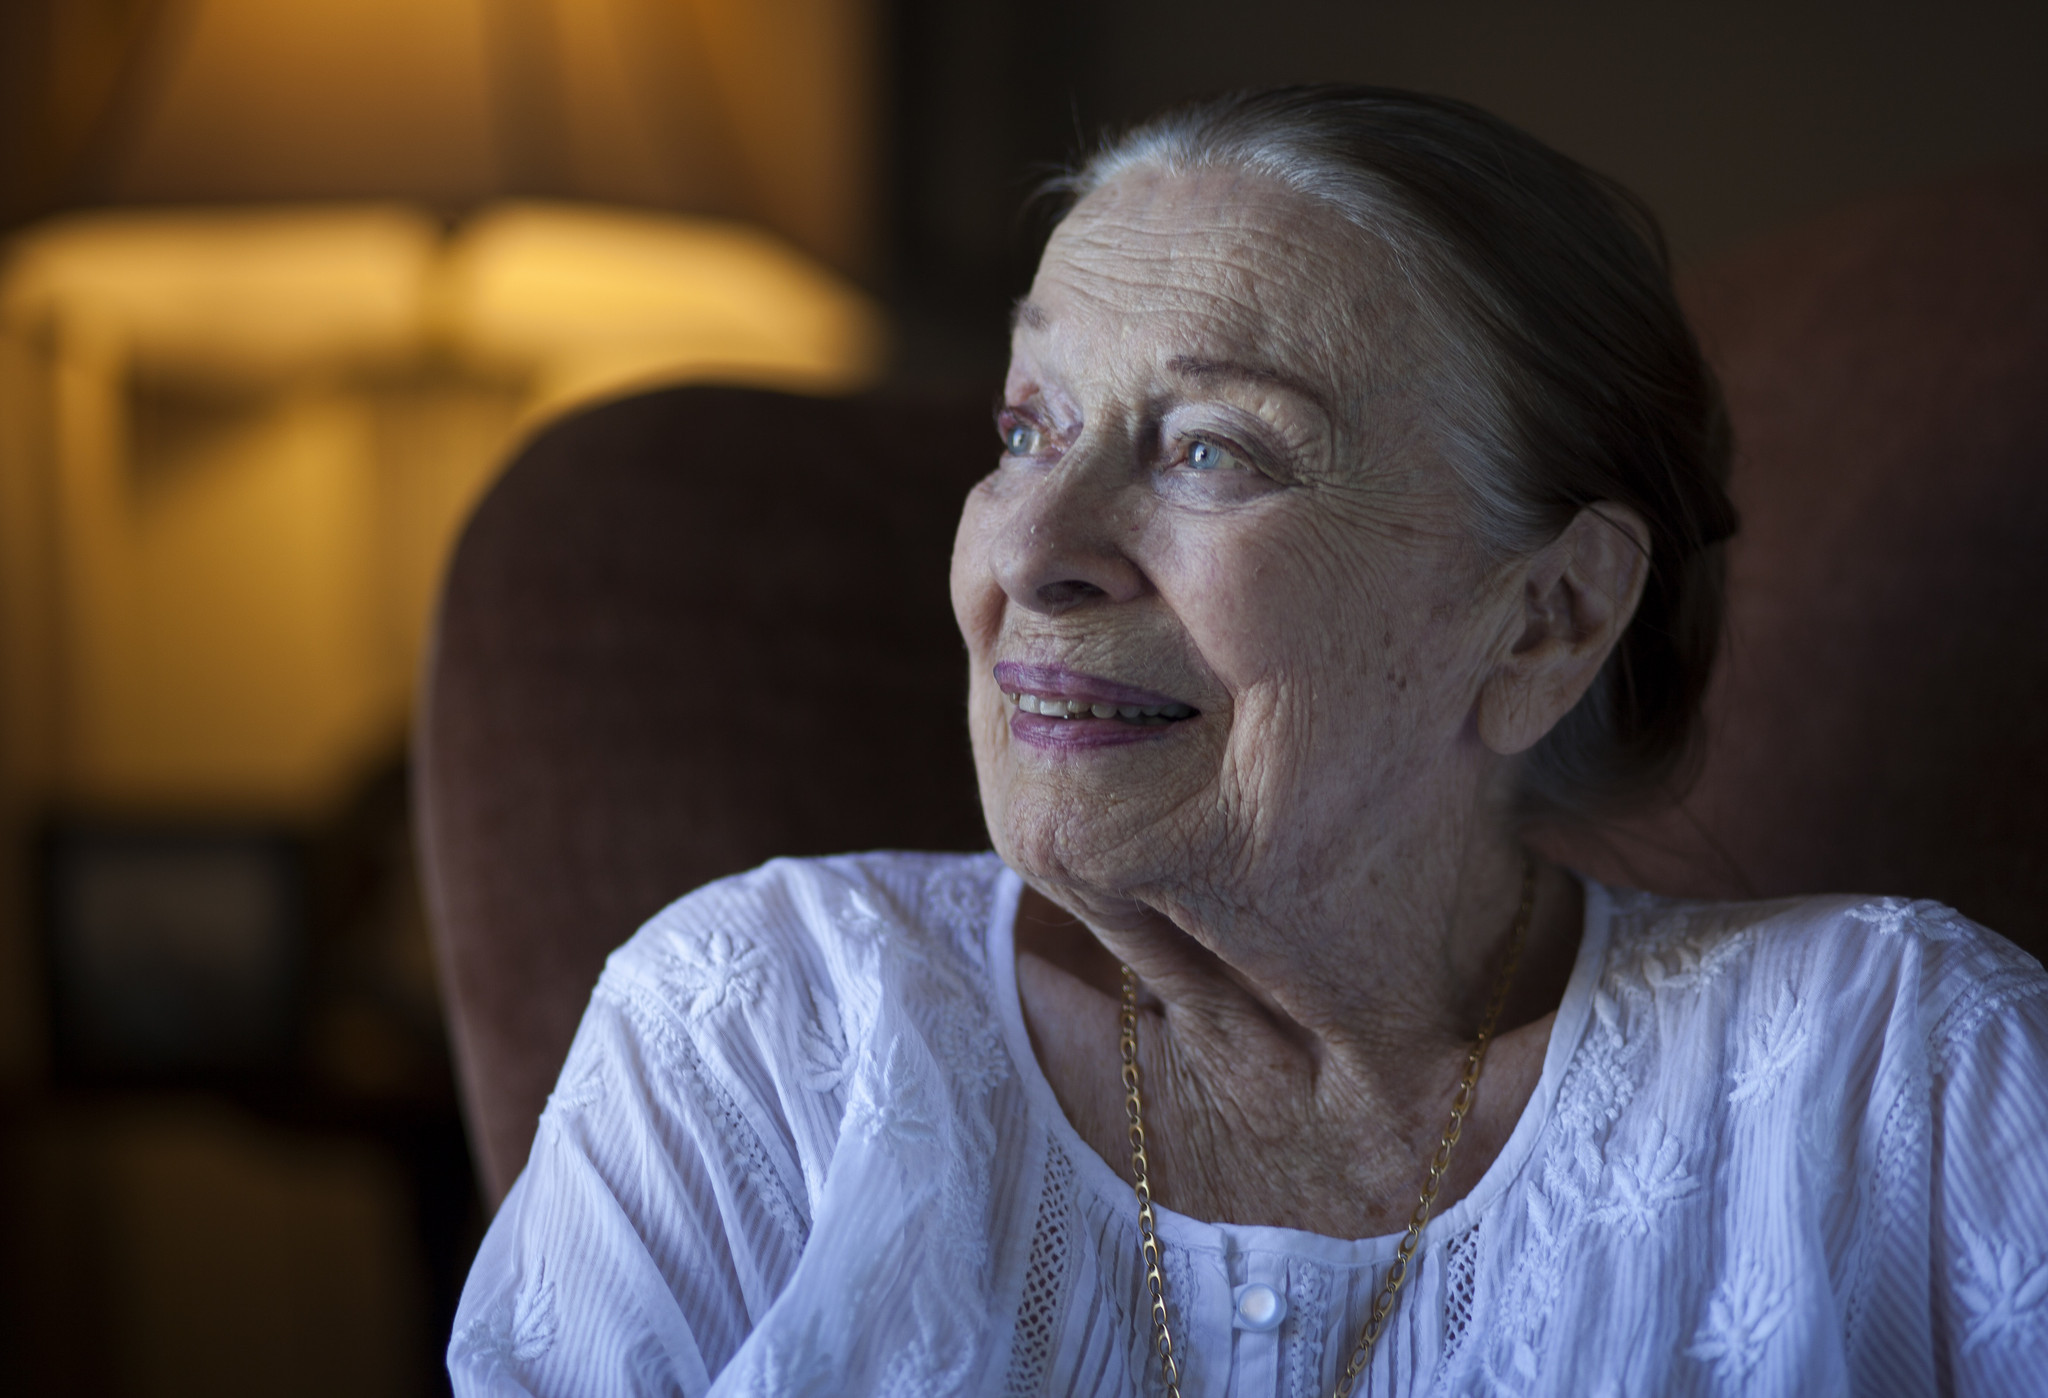 Patricia Morison Actress Patricia Morison reminisces as 100th birthday nears LA Times